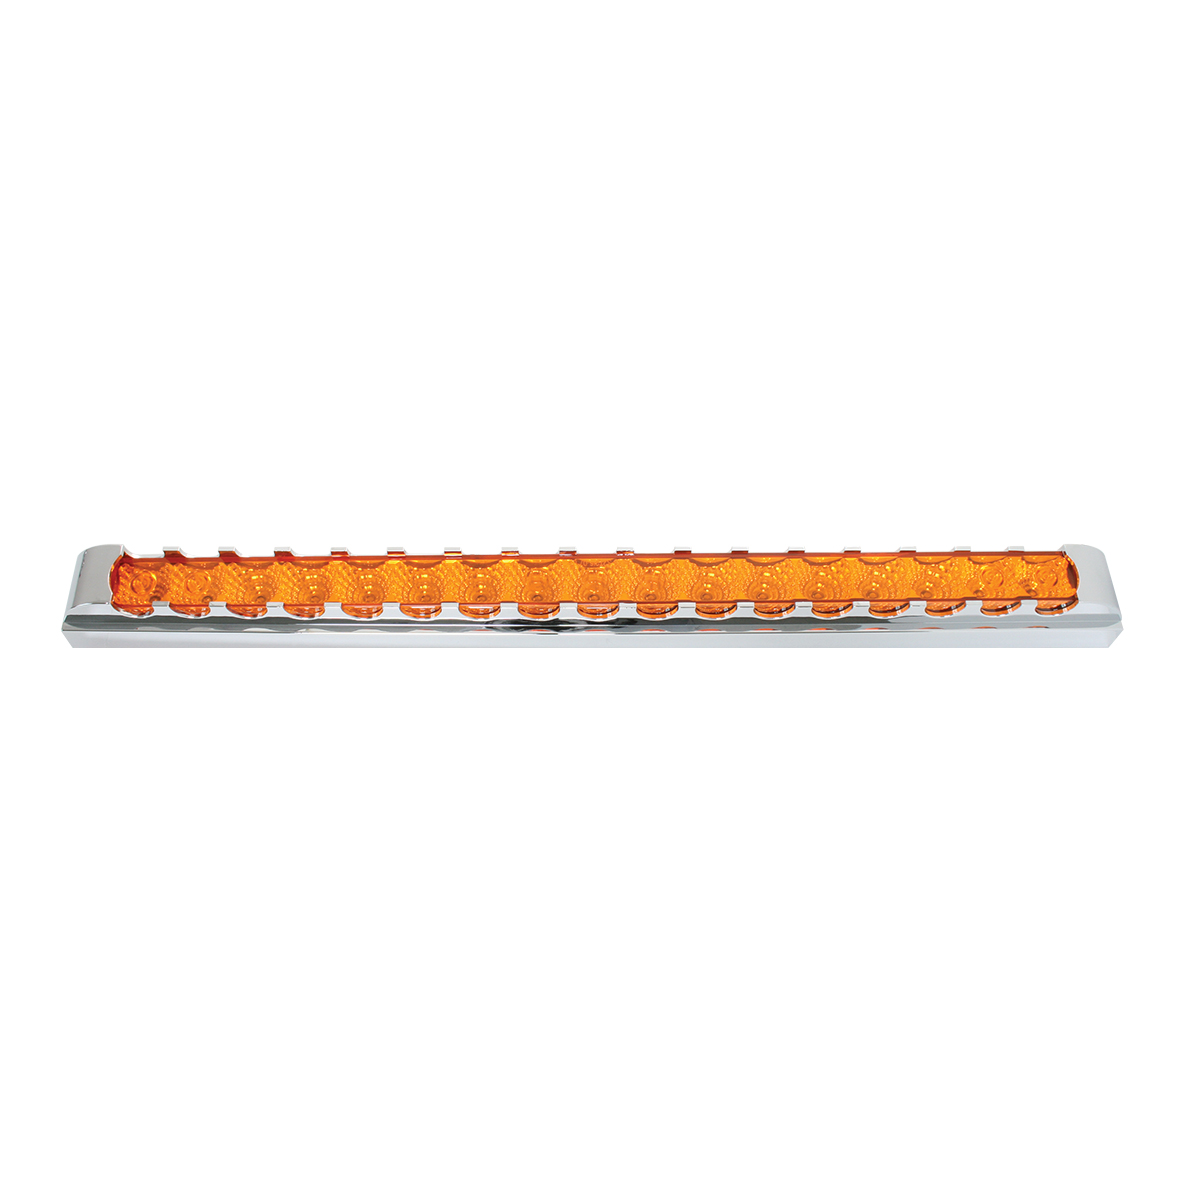 "76300 20"" Spyder LED Light Bar w/ Chrome Plastic Bezel"